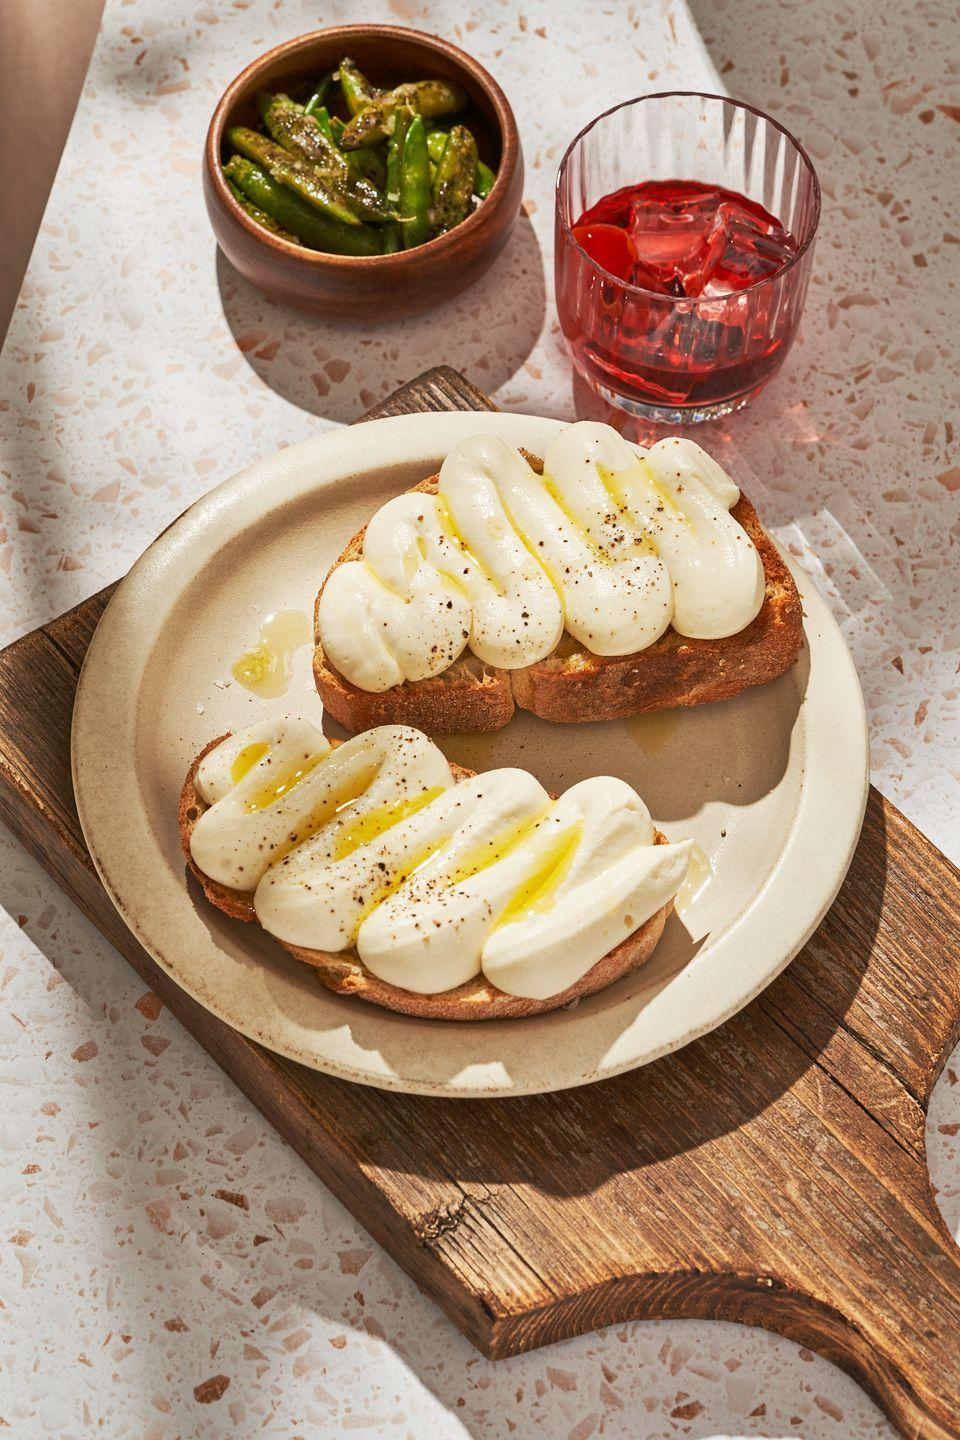 """<p>This light, fluffy whipped ricotta is as close as you can get to eating a cloud.</p><p>Get the recipe from <a href=""""https://www.delish.com/cooking/a36276712/whipped-ricotta-toast-recipe/"""" rel=""""nofollow noopener"""" target=""""_blank"""" data-ylk=""""slk:Delish"""" class=""""link rapid-noclick-resp"""">Delish</a>.</p>"""